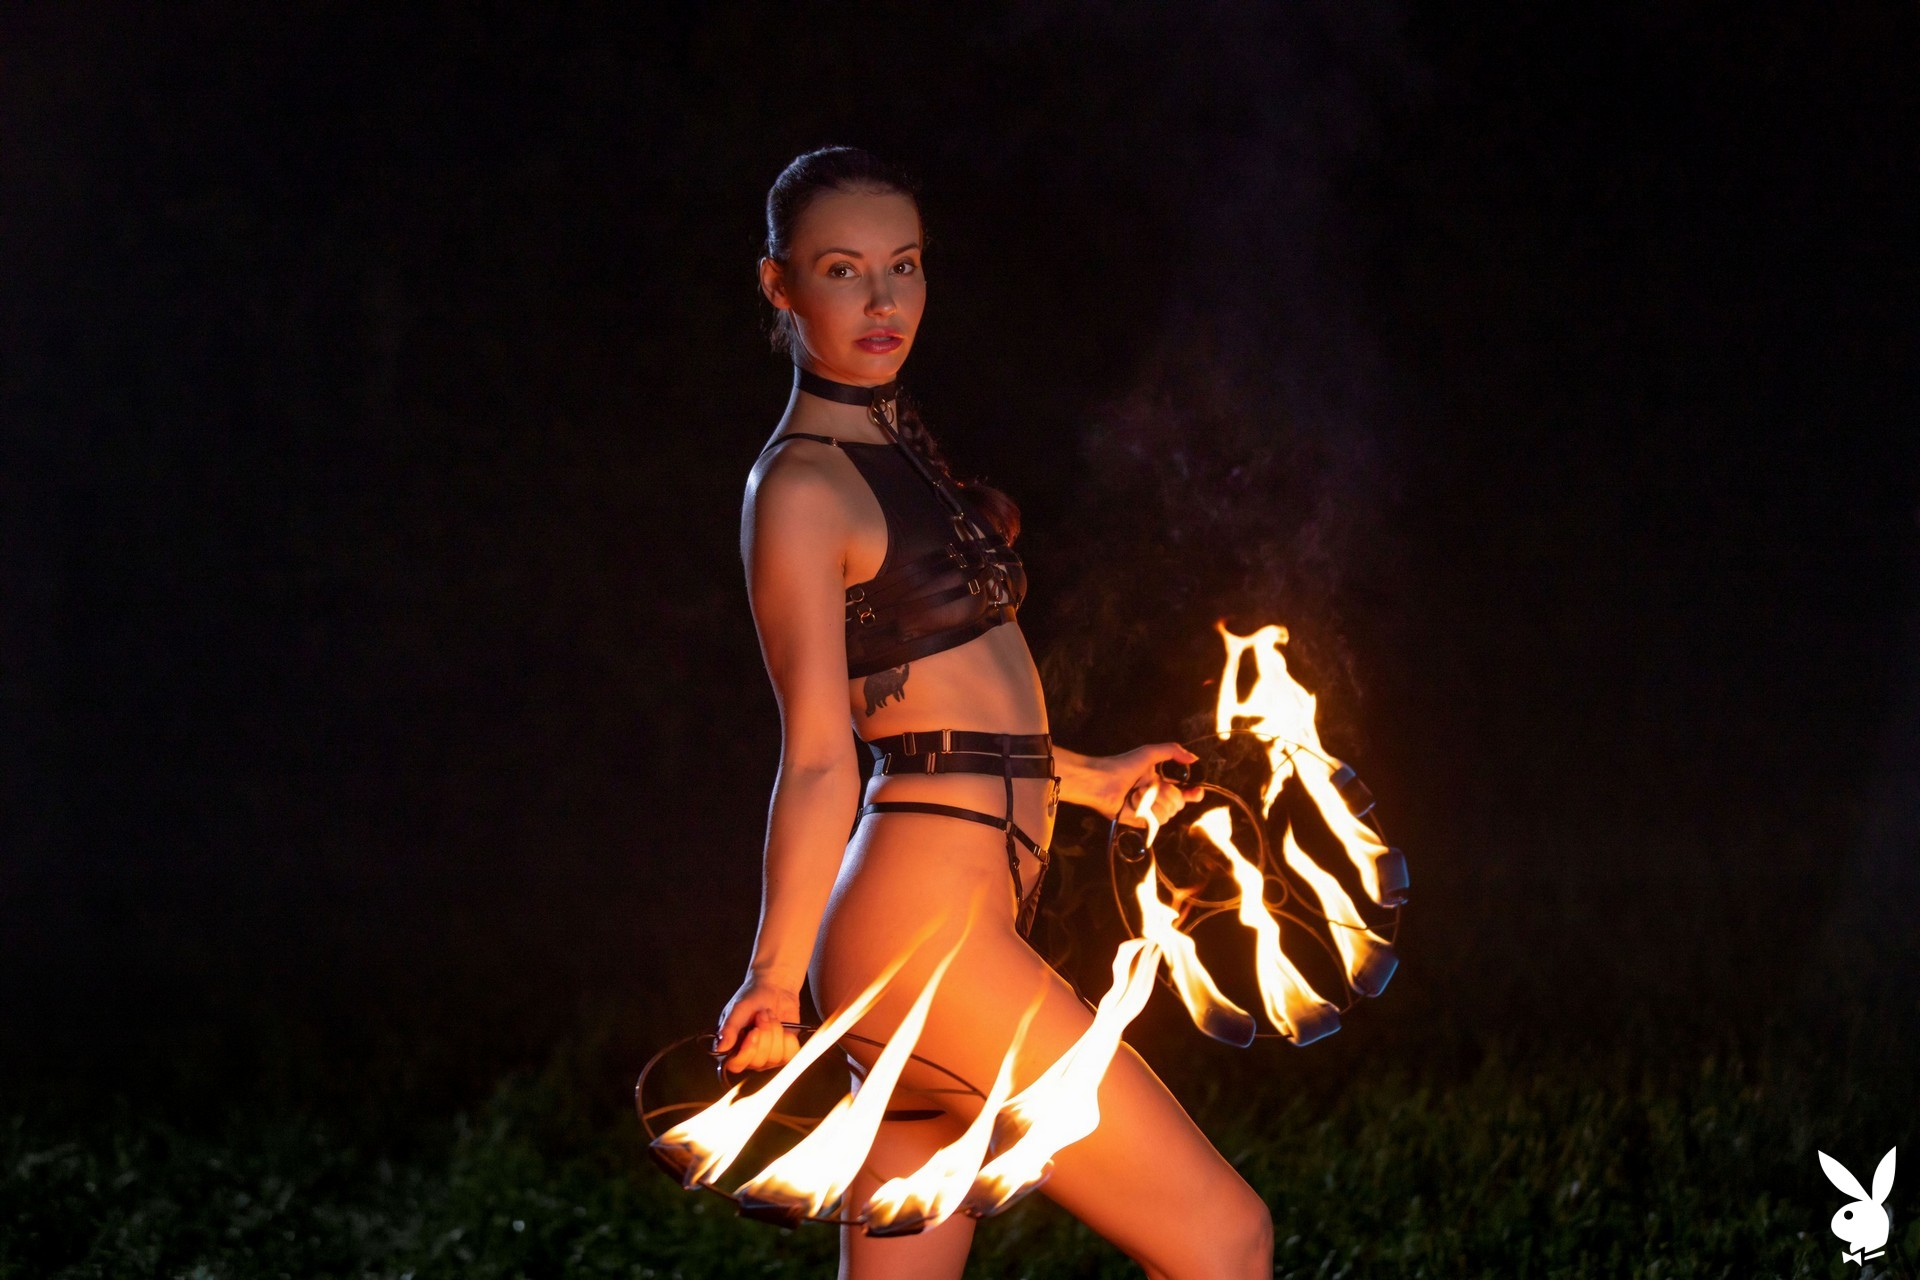 Elilith Noir In Playing With Fire Playboy Plus (7)